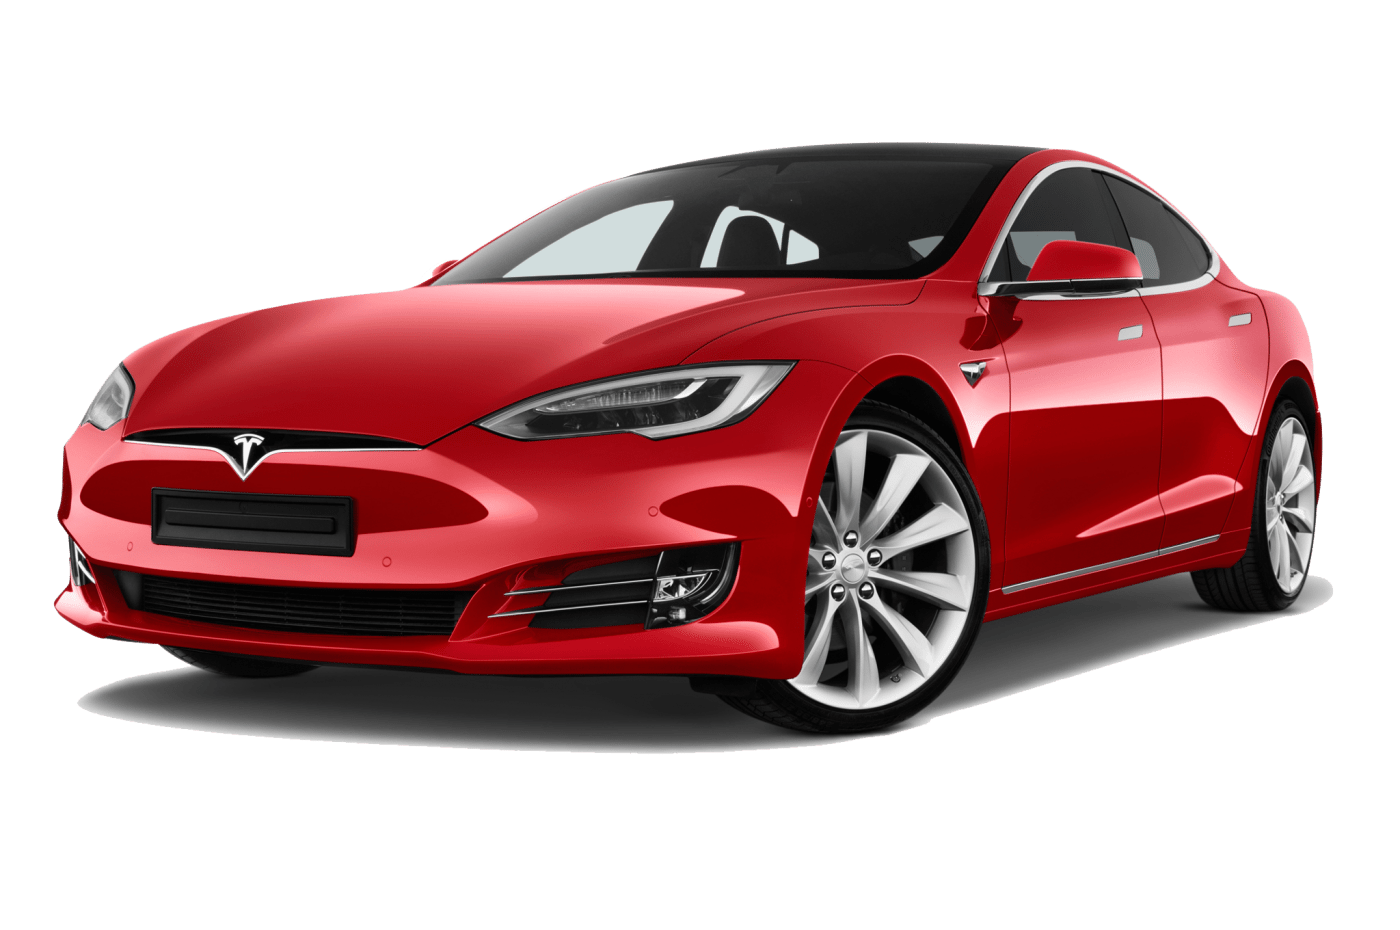 Test Drive a Tesla Model S for 7 Days